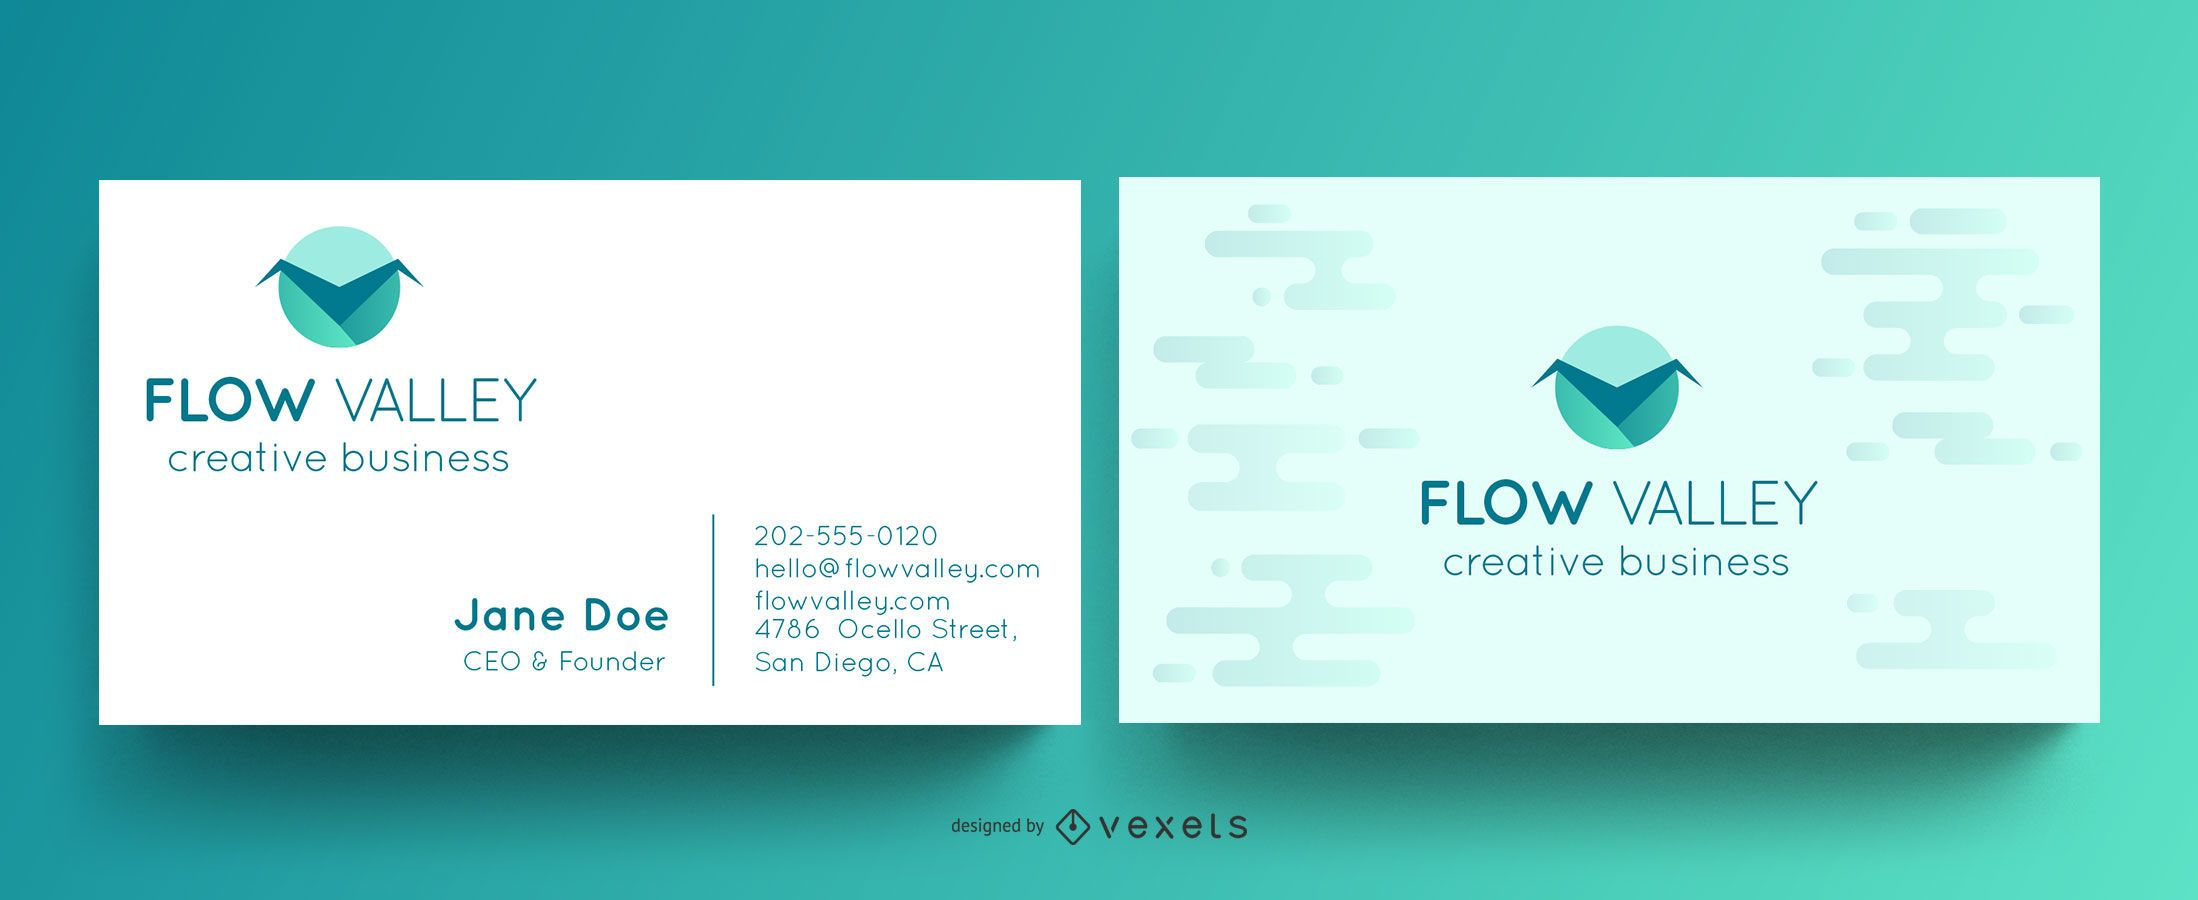 Flow valley business card template